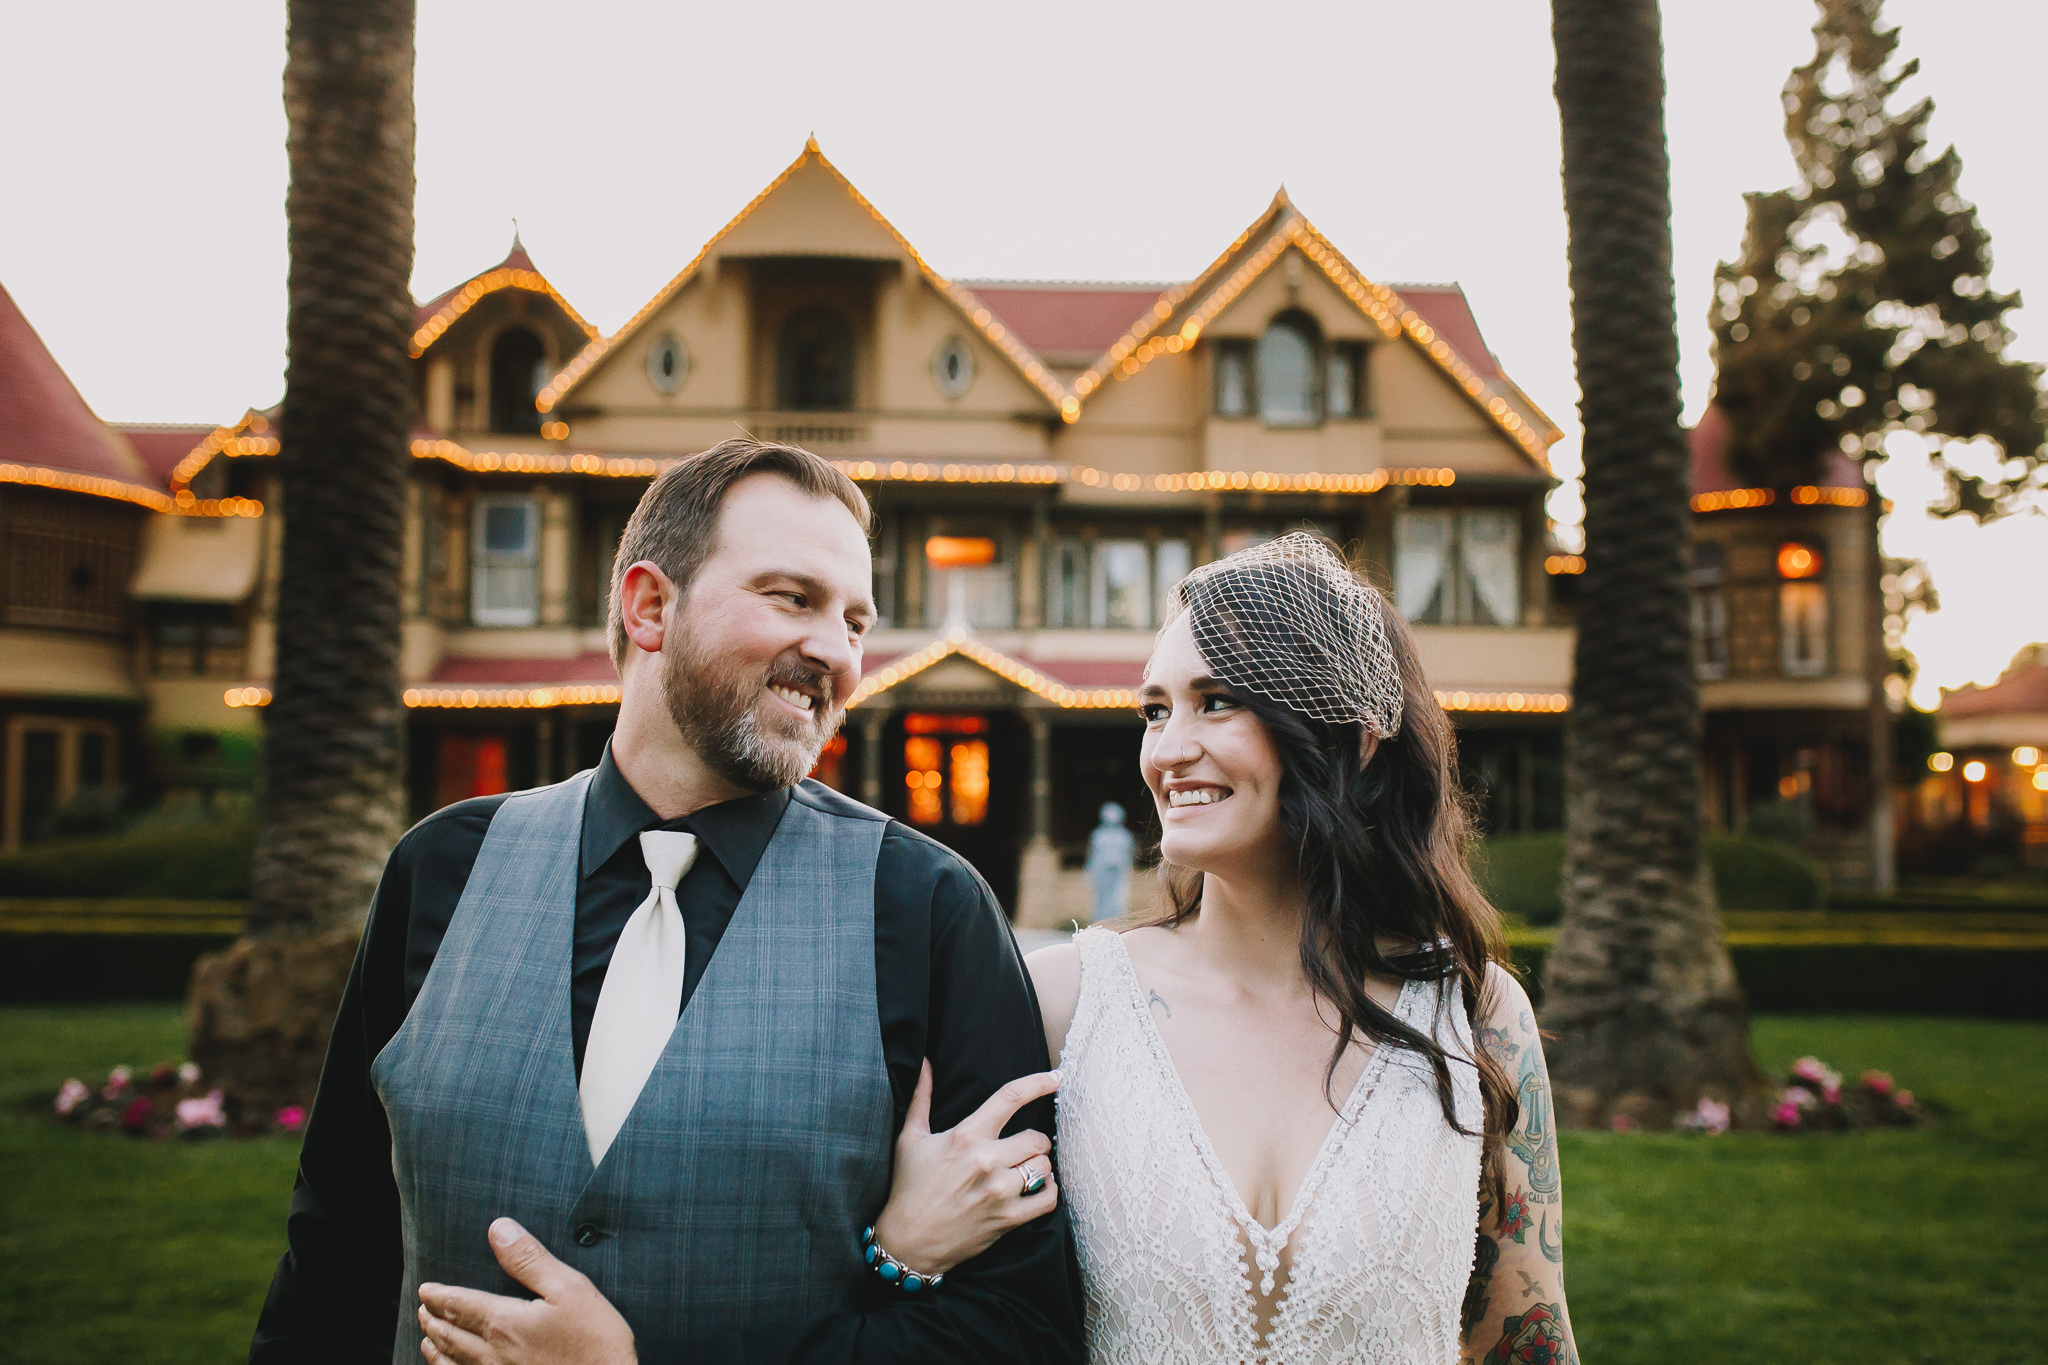 Archer Inspired Photography Sara and Aaron Winchester Mystery House NorCal San Jose California Wedding Photographer-515.jpg